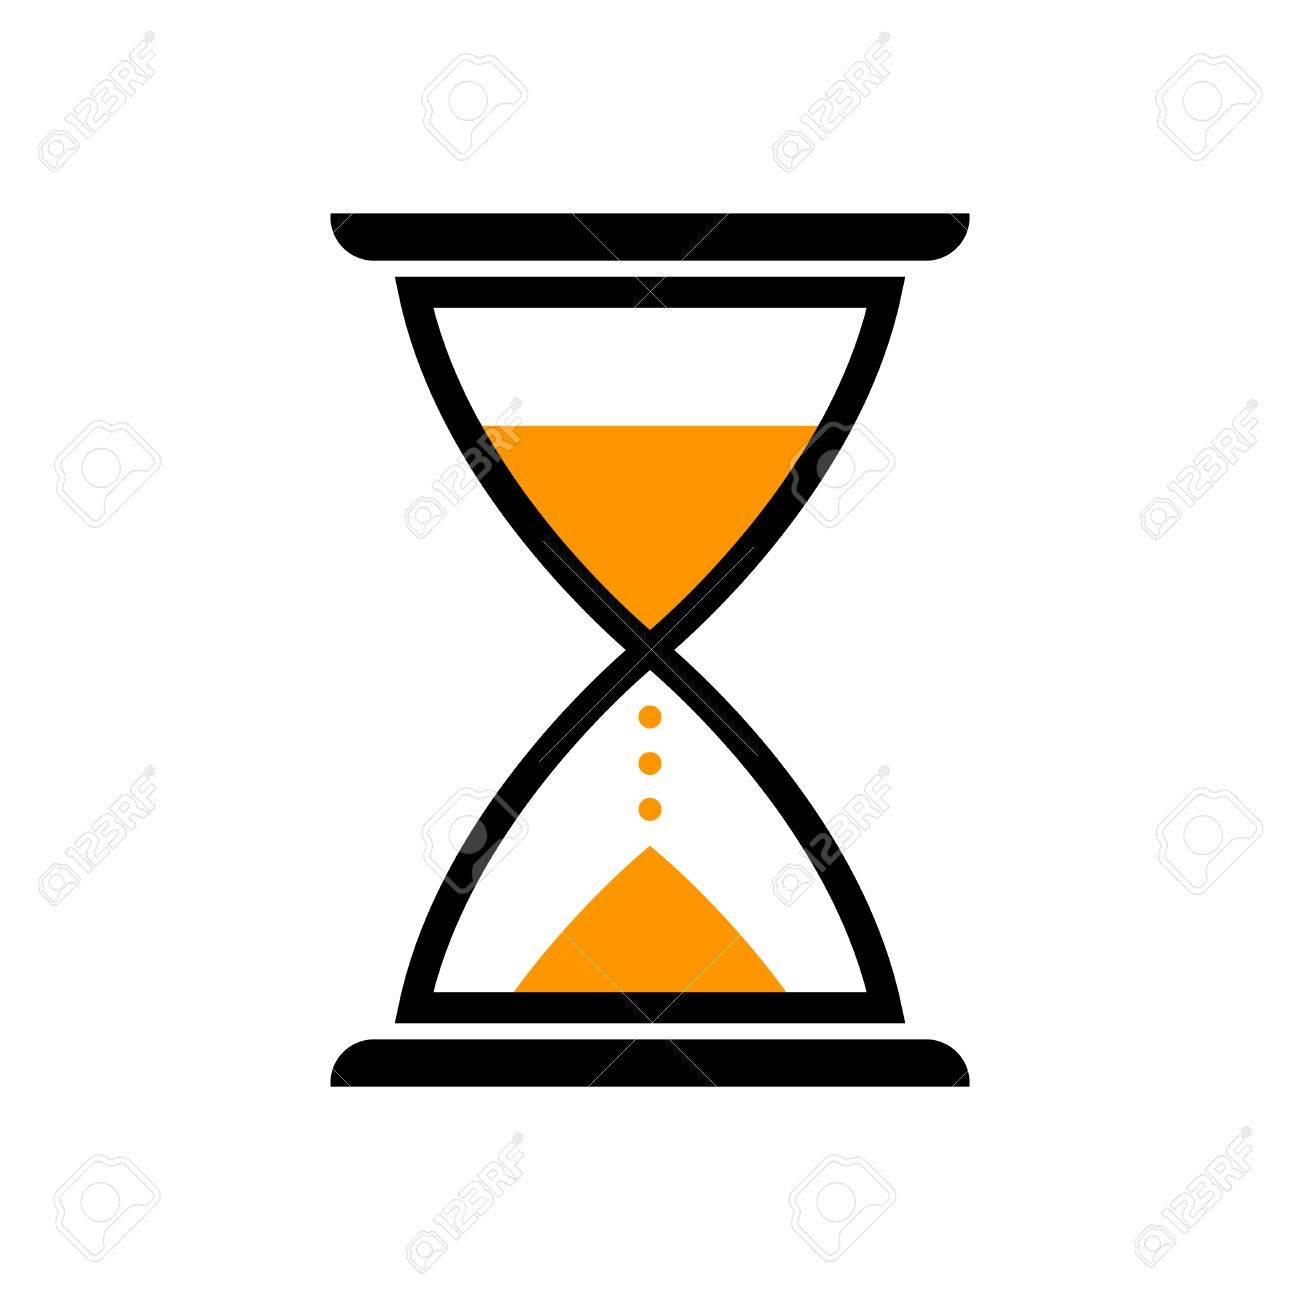 hourglass vector icon isolated object on white background royalty rh 123rf com hourglass vector graphic free hourglass vector graphic free